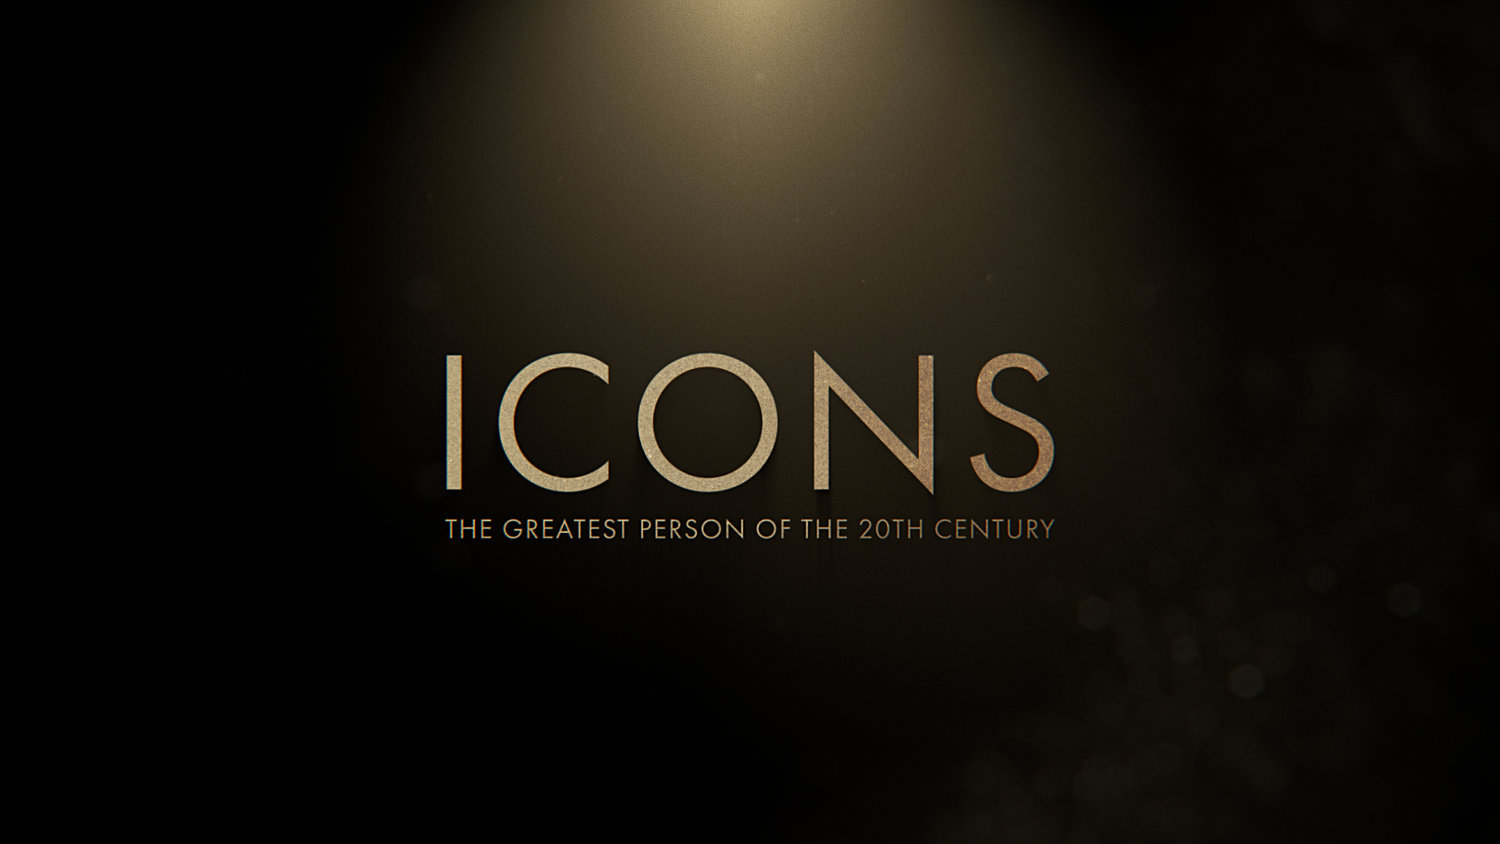 ICONS: The Greatest Person of the 20th Century | 72 Films